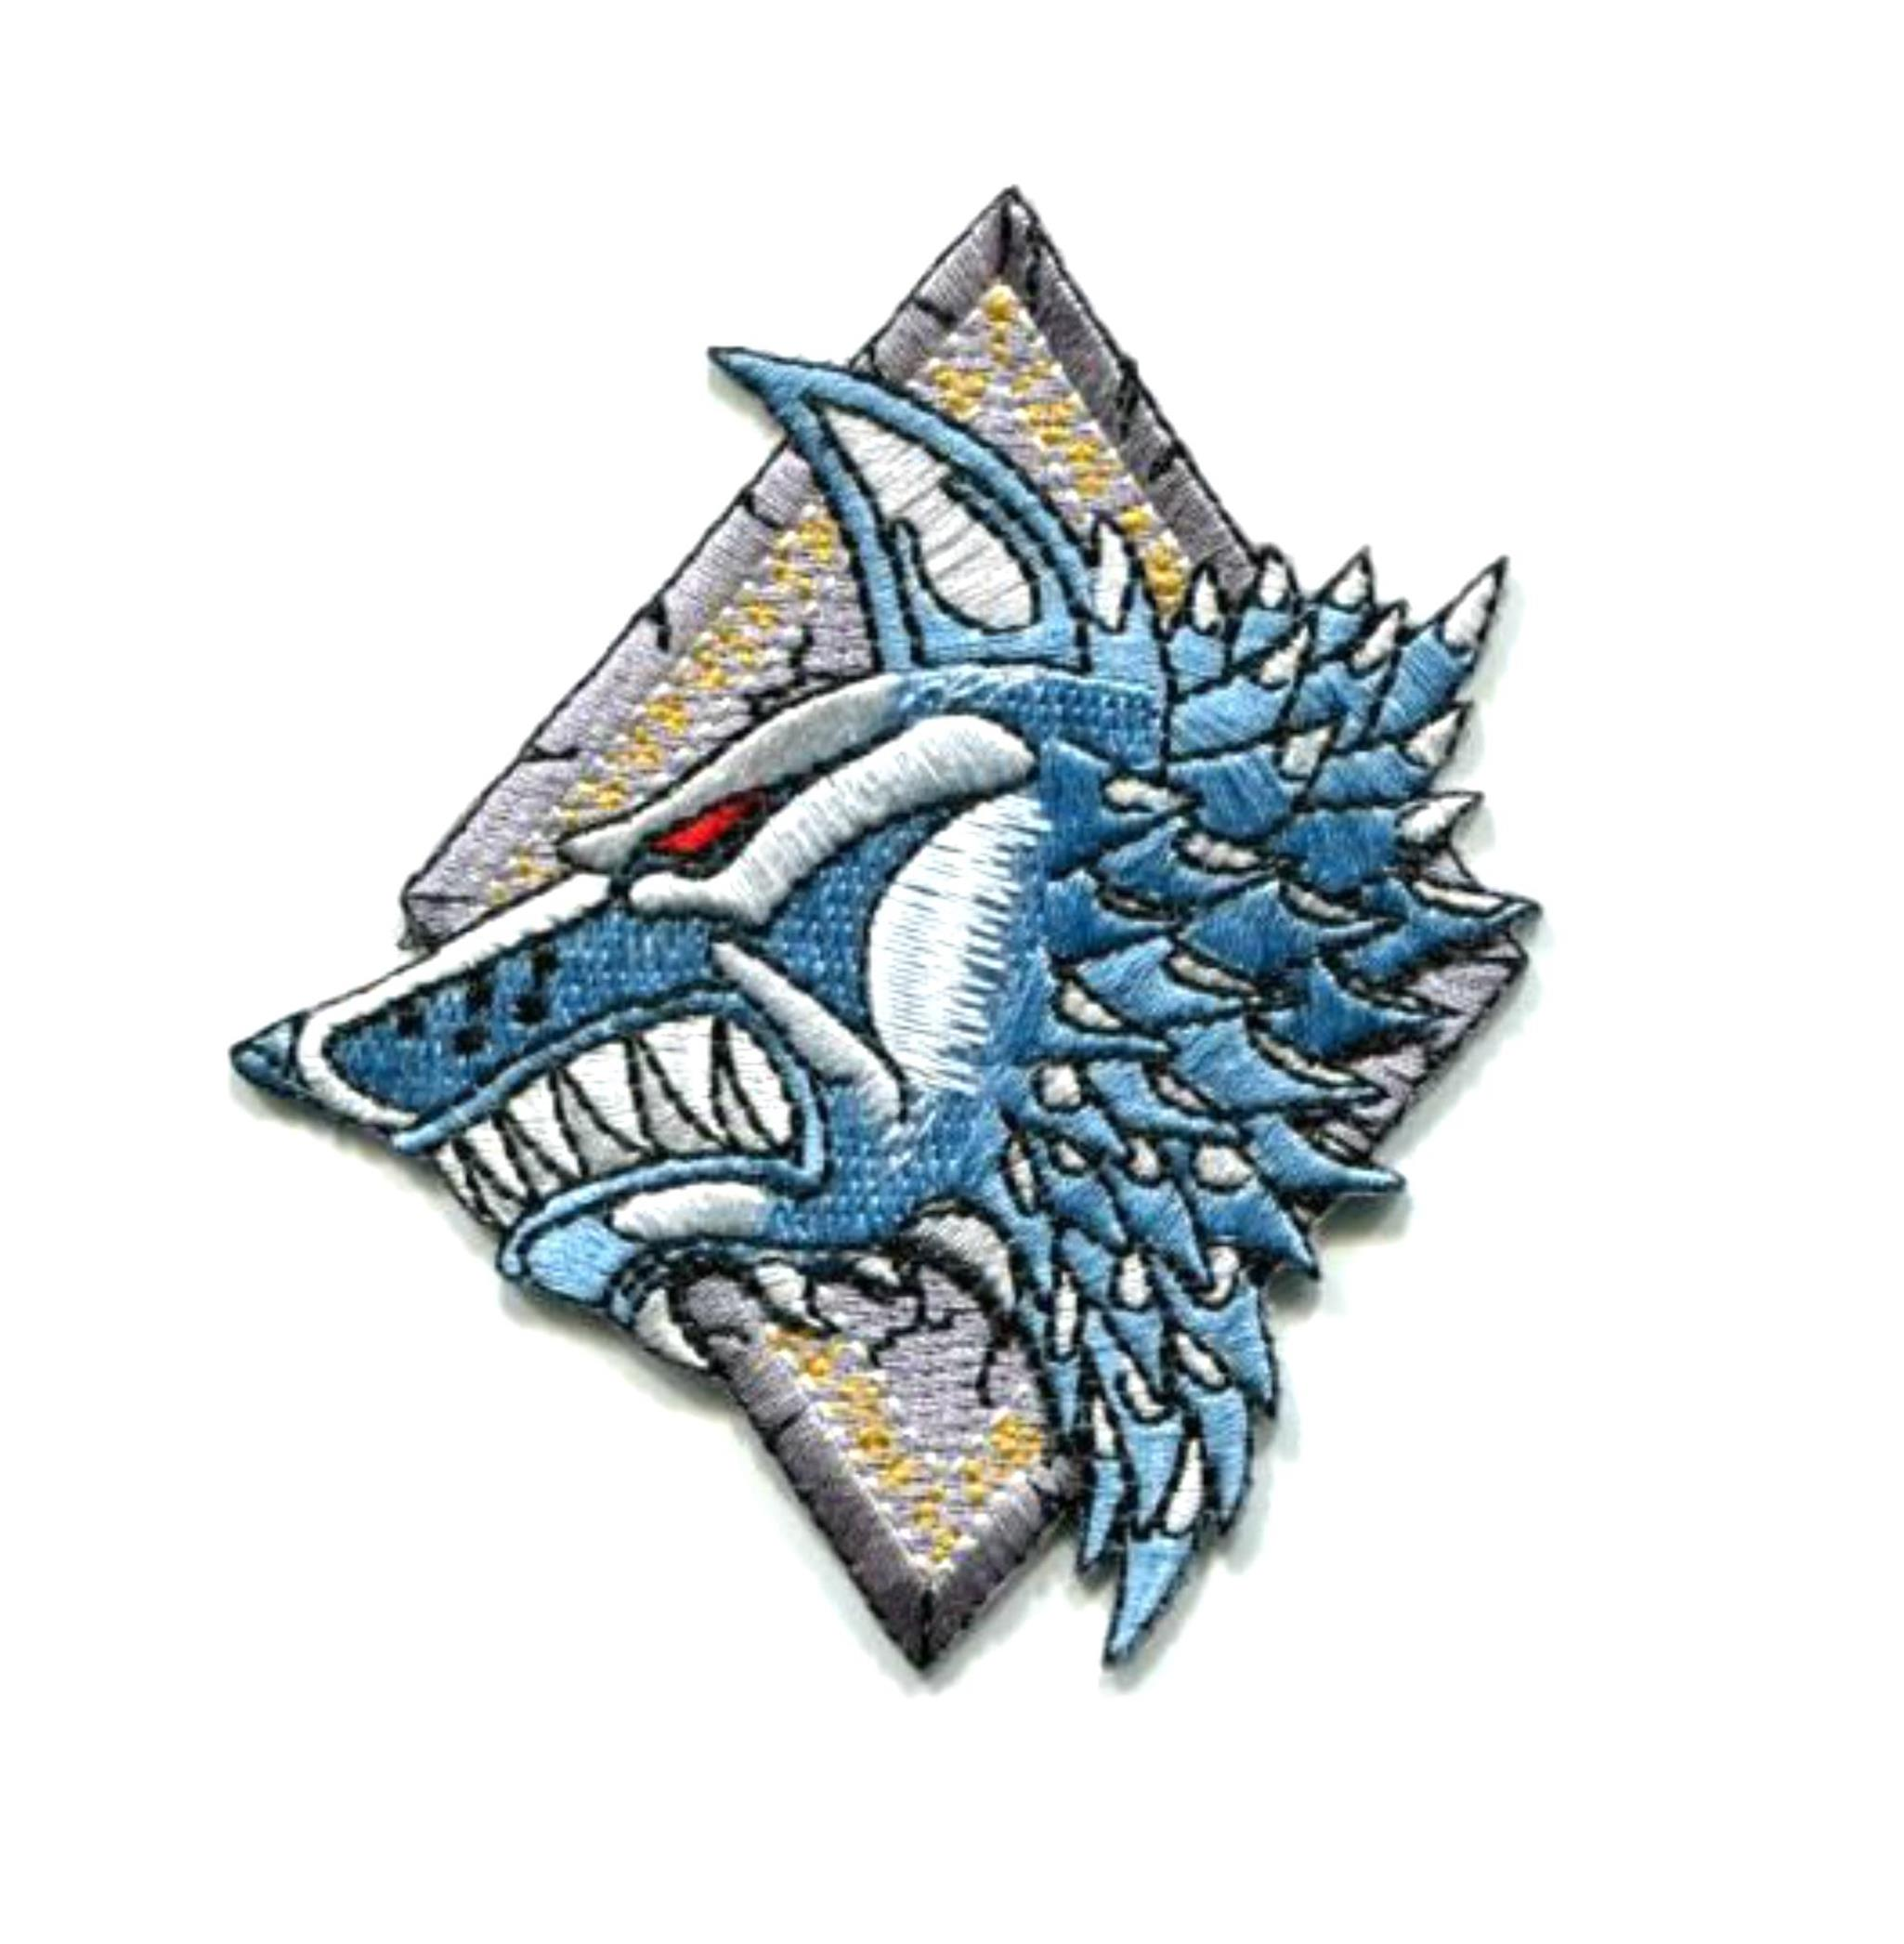 """Superheroes Warhammer 40K Space Wolves 3.5"""" X 3""""  Embroidered Iron/Sew-on Applique Patch"""